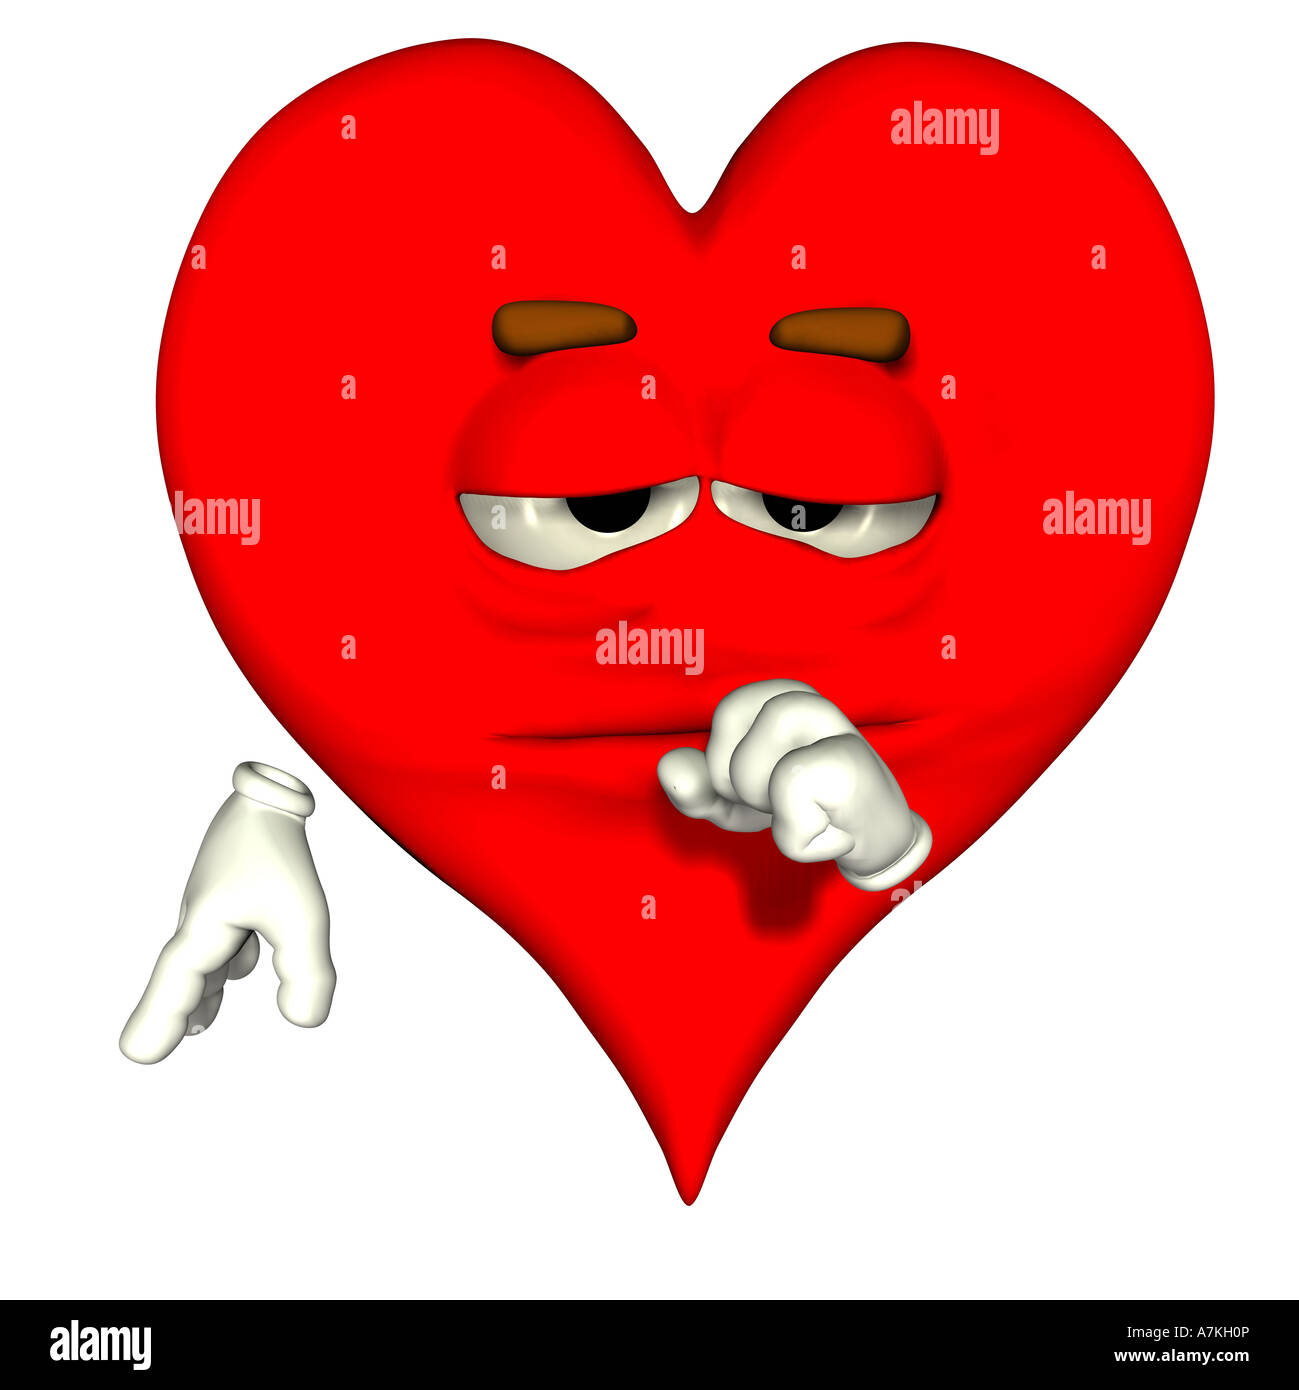 Free Heart Medical Cliparts, Download Free Clip Art, Free Clip Art on  Clipart Library